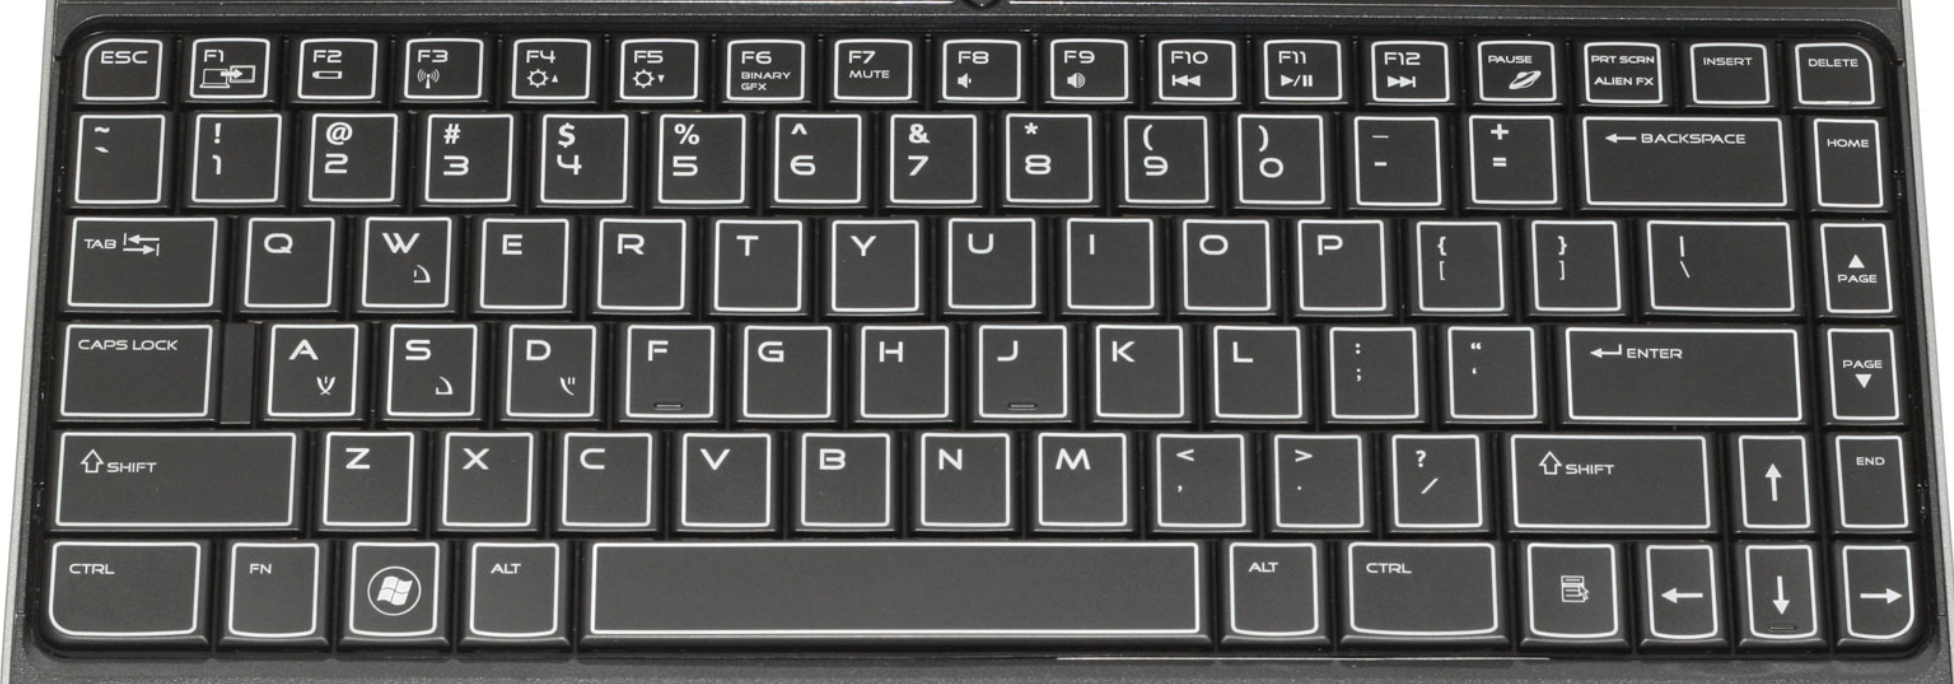 dell m11x laptop keyboard keys